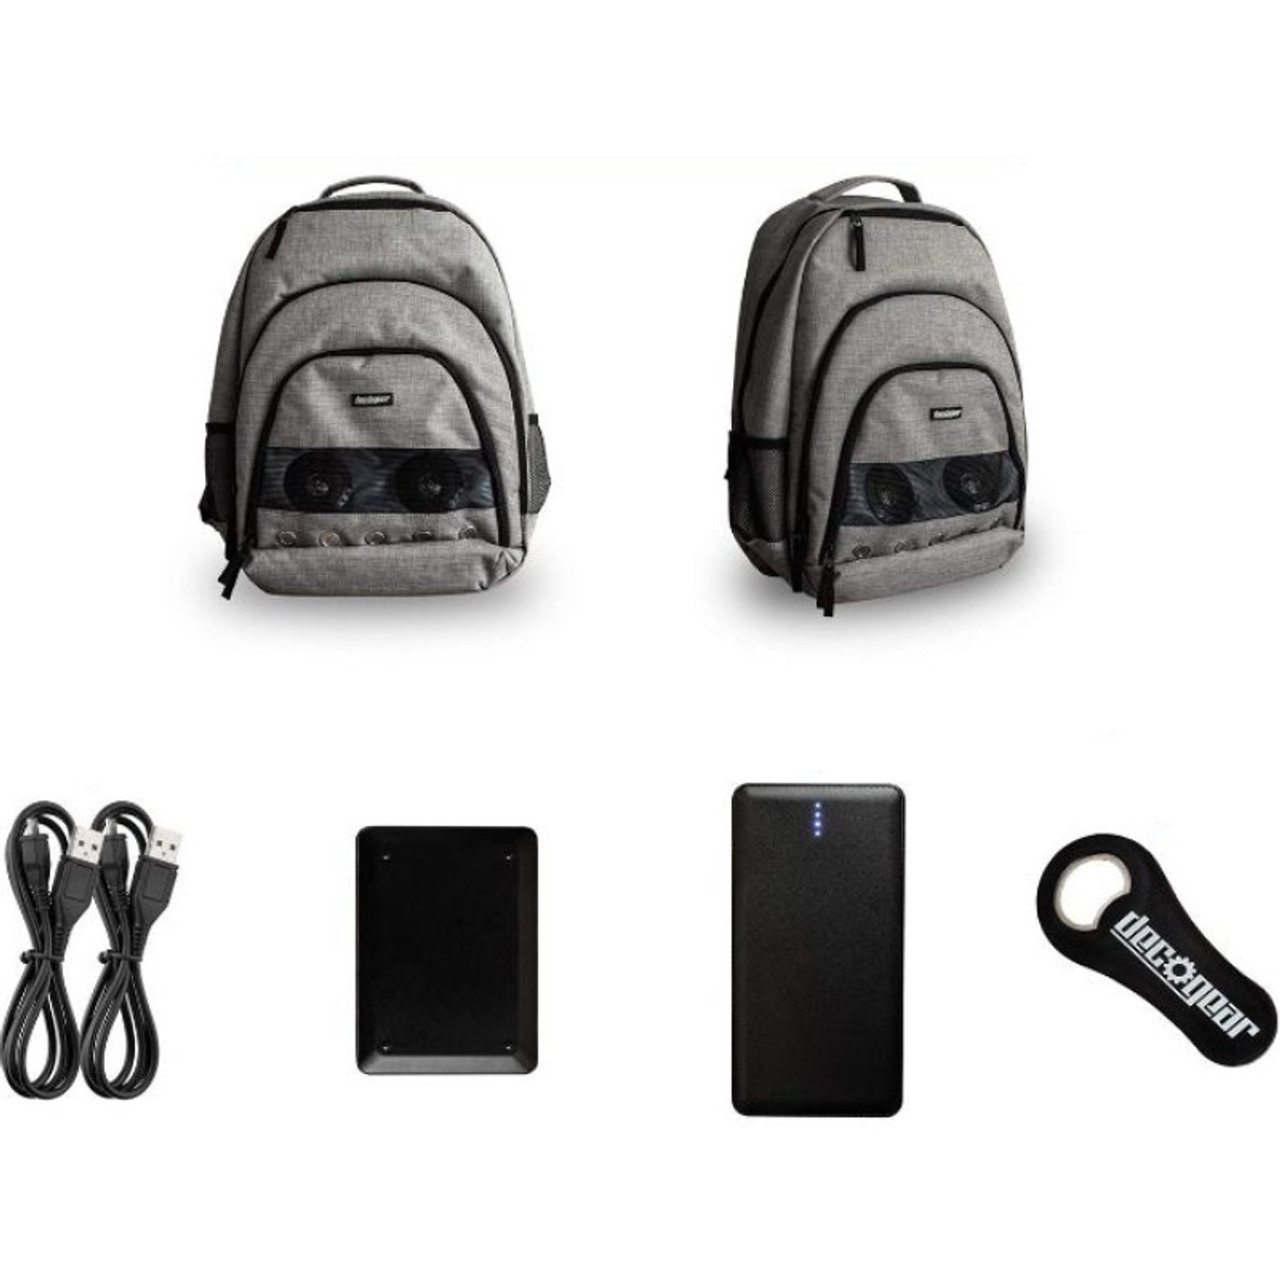 Deco Gear Speaker Backpack with 10,000 mAh Power Bank - Wireless Playback